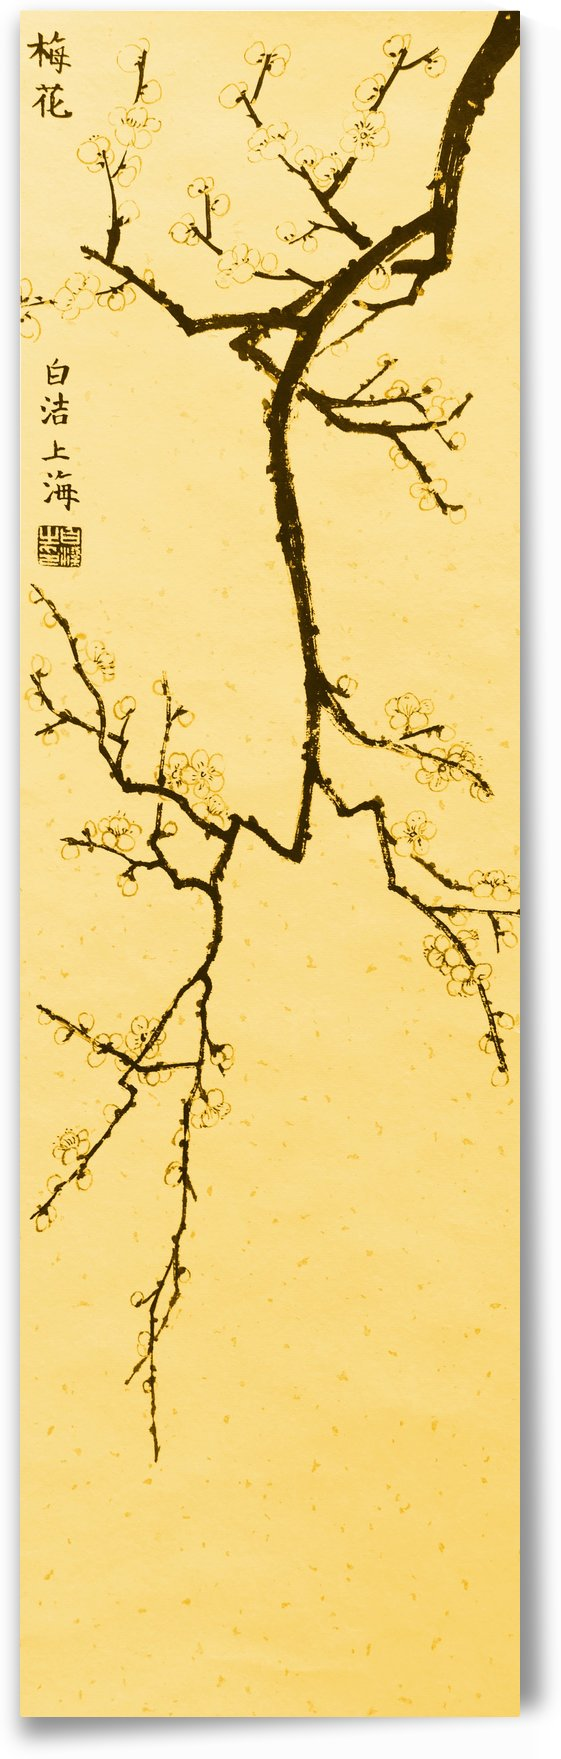 Plum Blossom Twig - Yellow by Birgit Moldenhauer